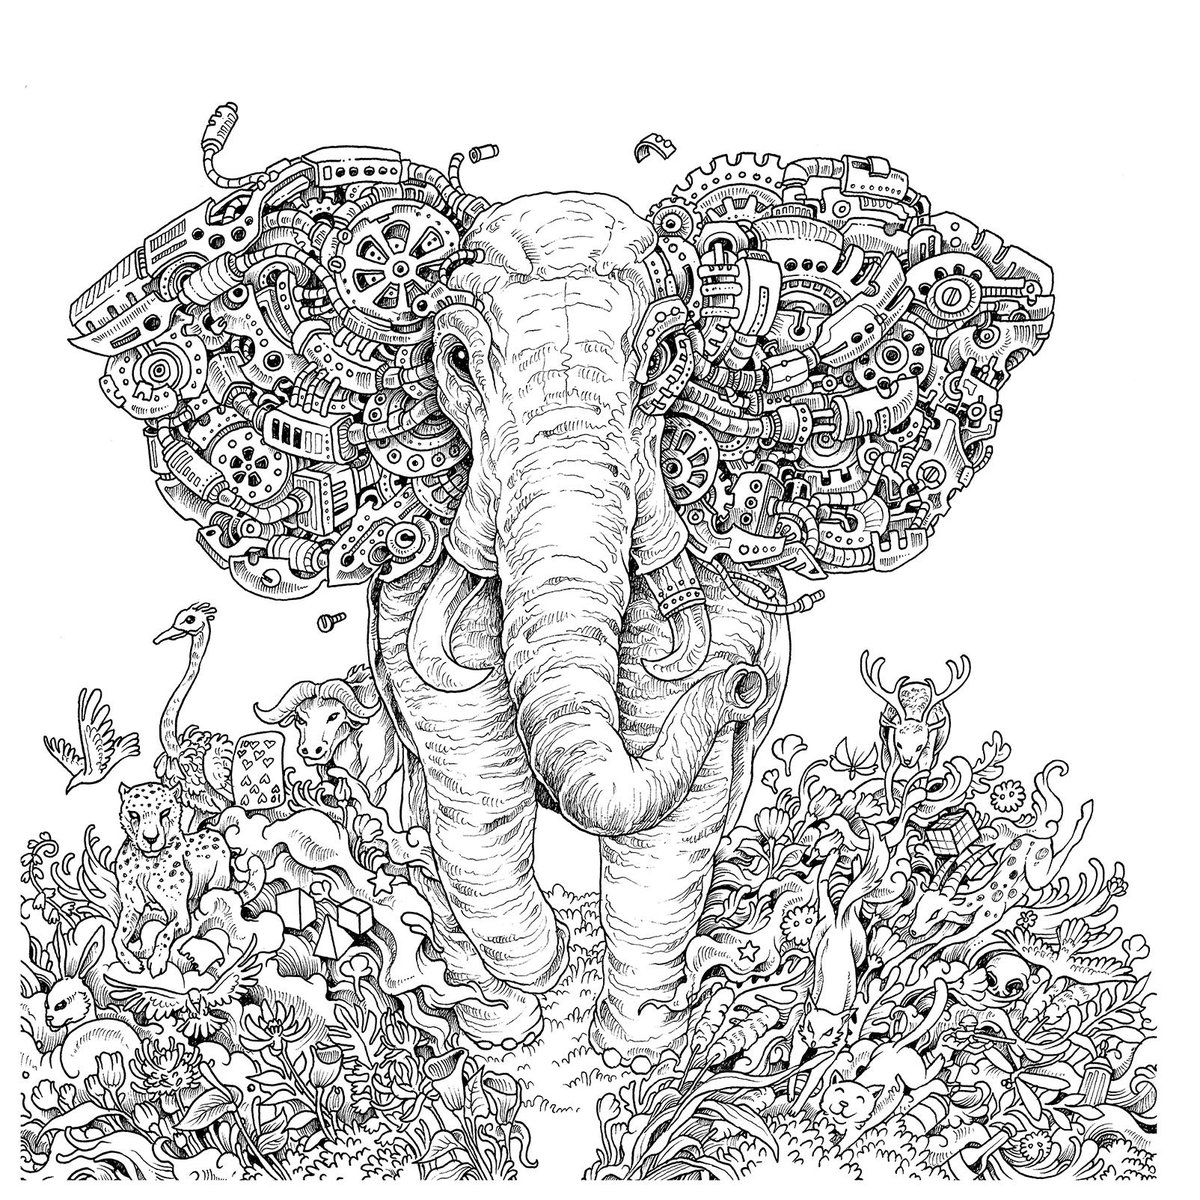 Kerby rosanes kerby rosanes twitter for Extreme coloring pages